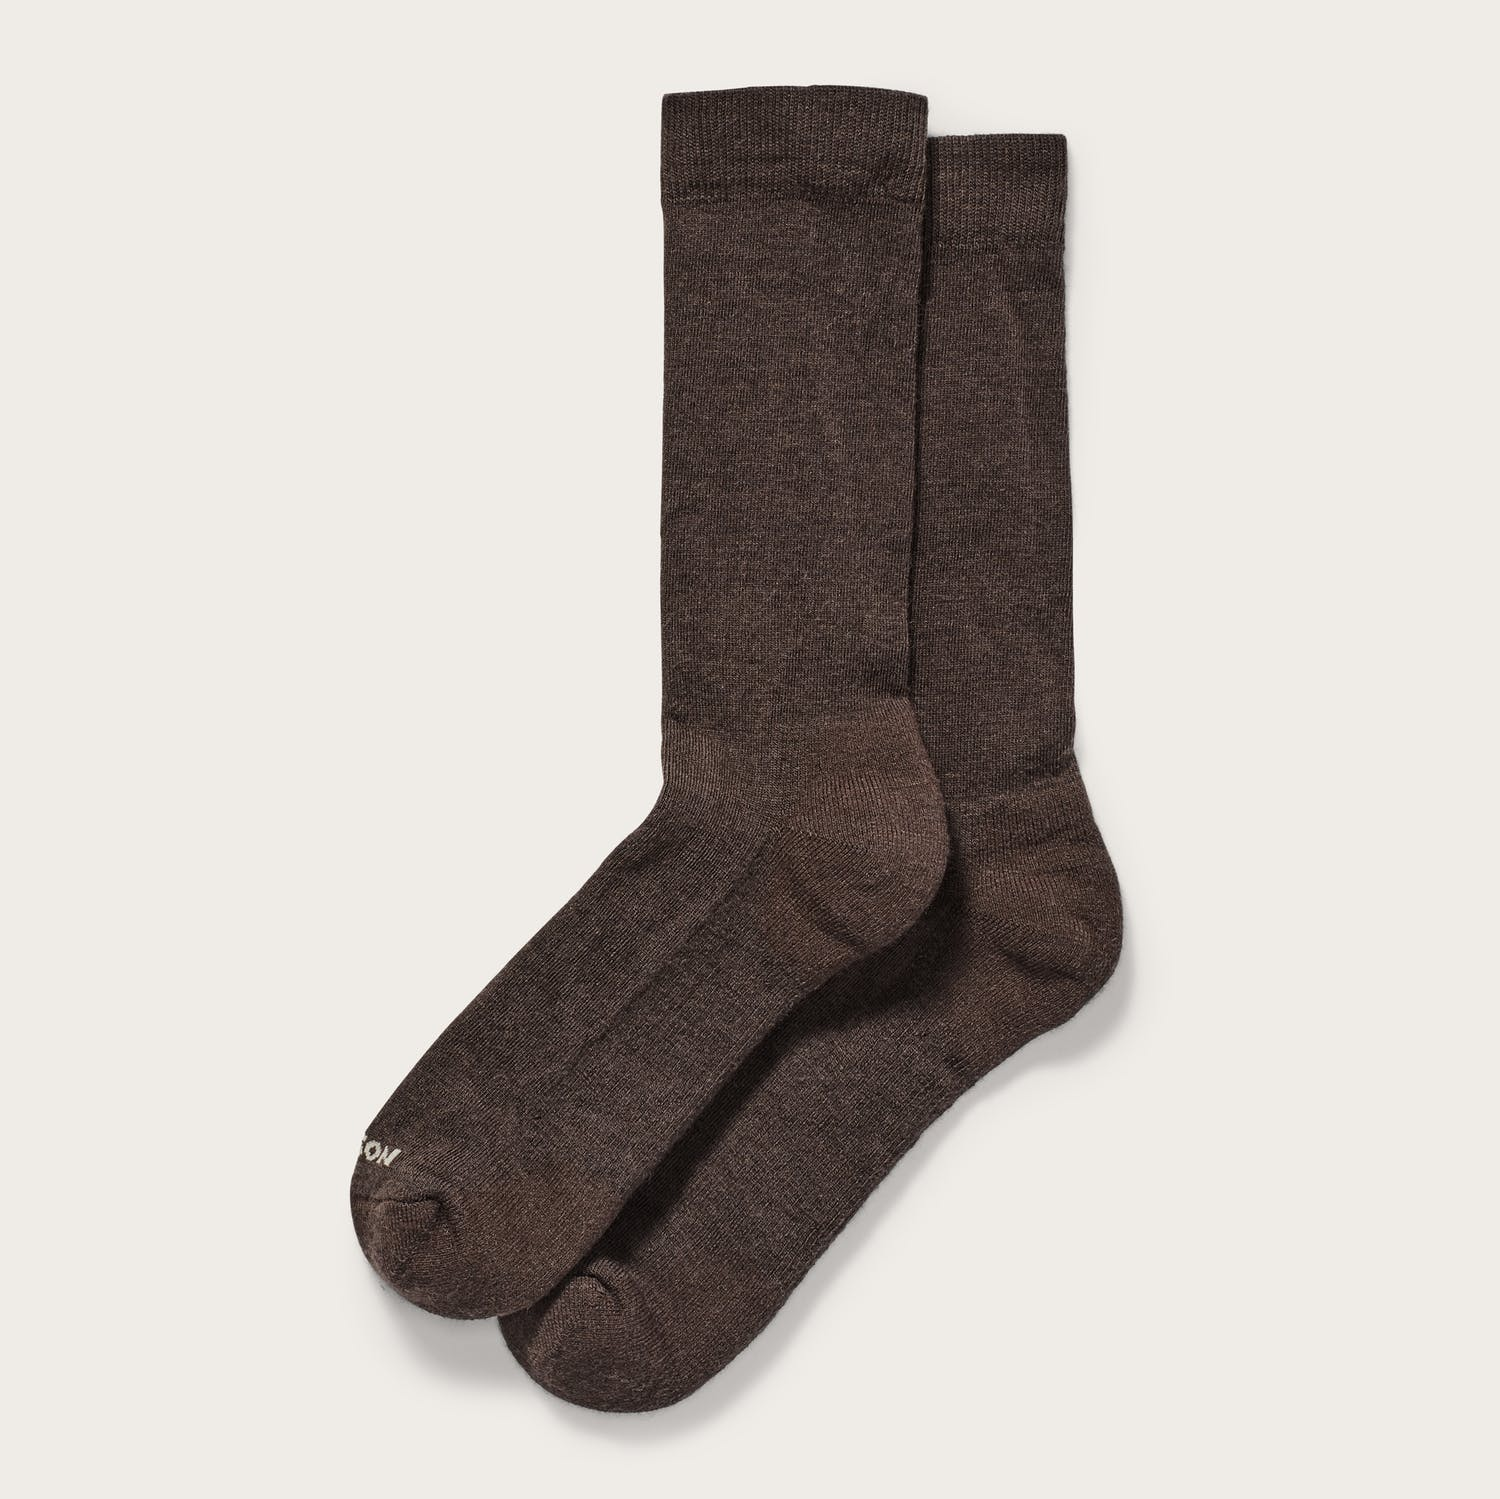 Filson - Everyday Crew Sock - Dark Brown - The Populess Company